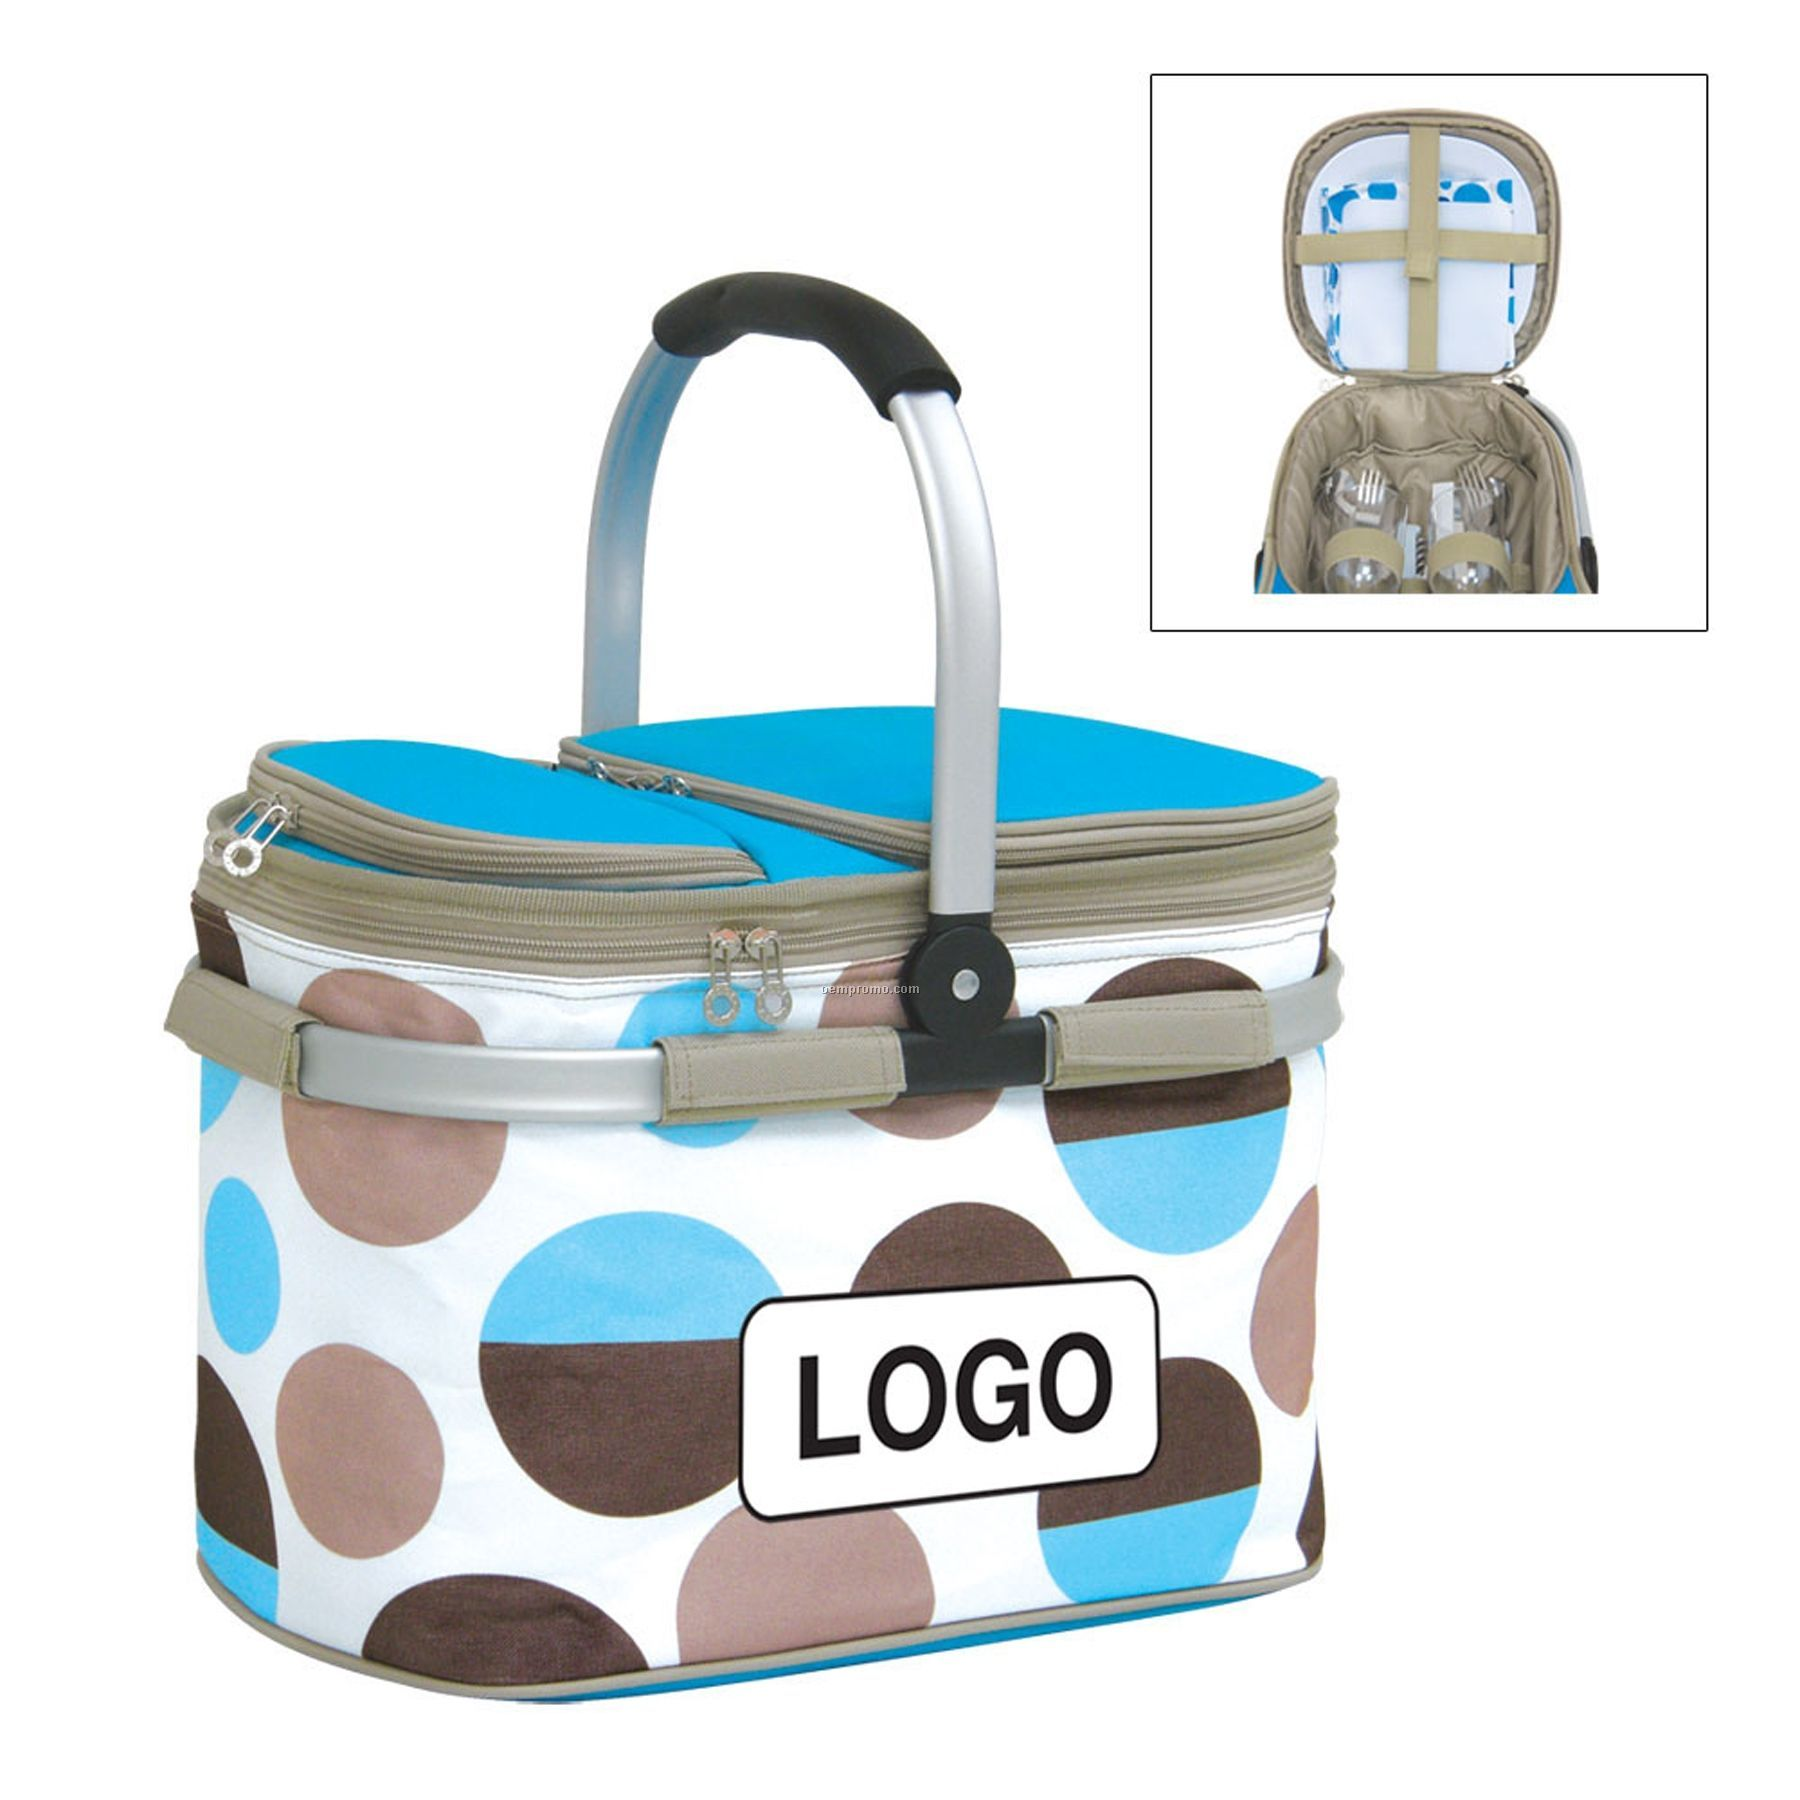 2 Person Insulated Picnic Basket